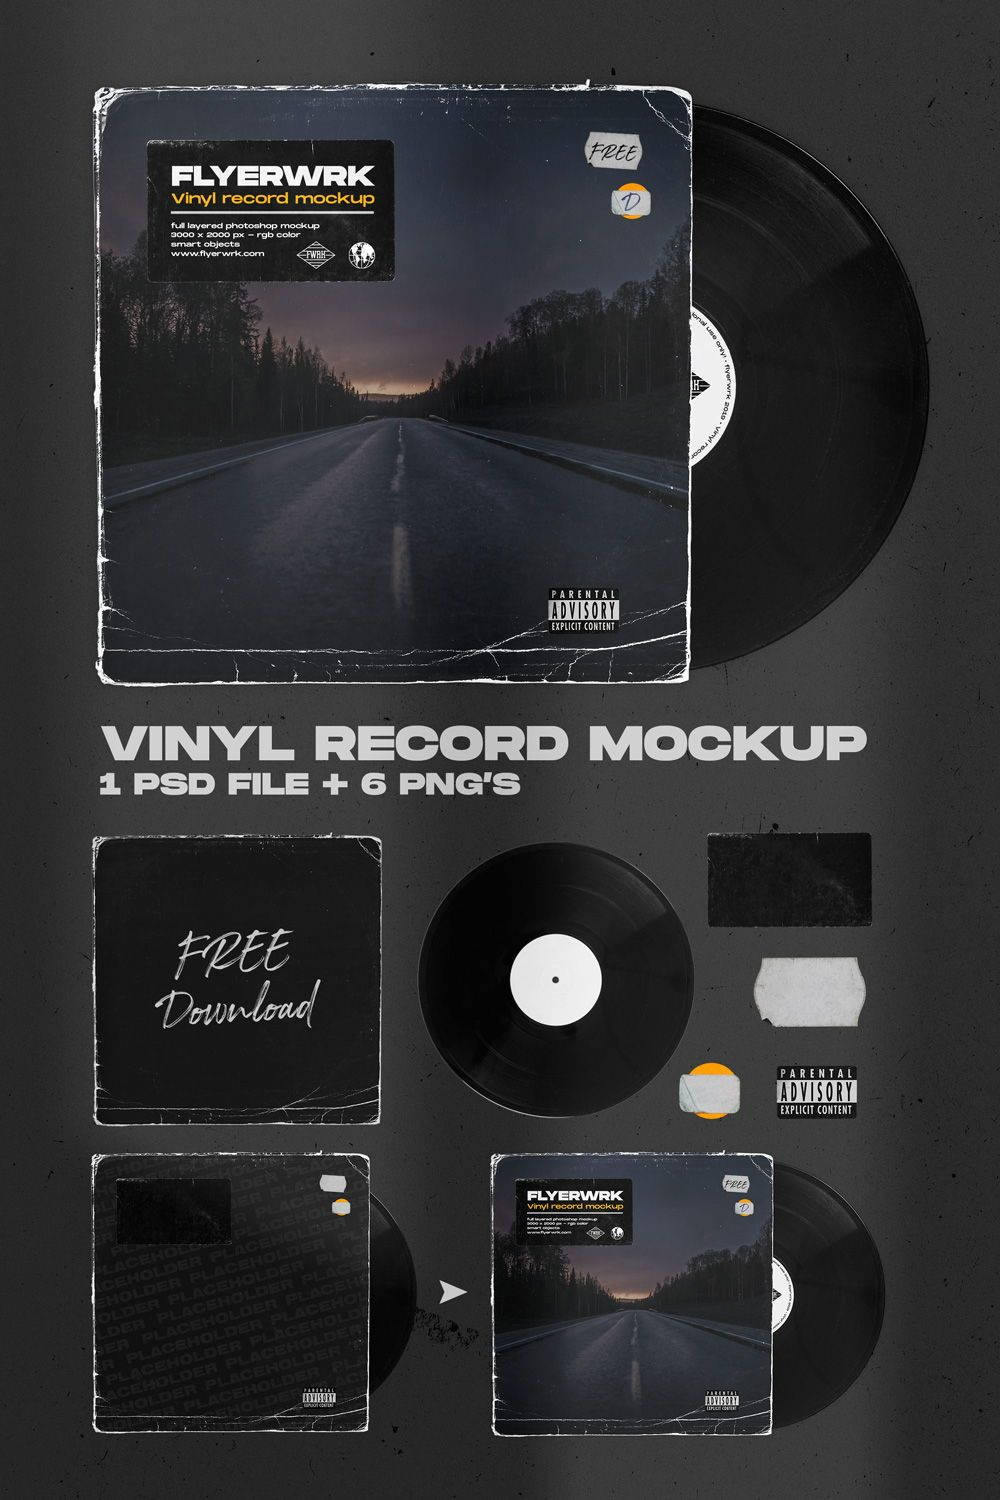 Vinyl Record Photoshop Mockup Great For Creating Album Covers And Other Forms Of Artistic Promotional De Promotional Design Cover Art Design Photoshop Design